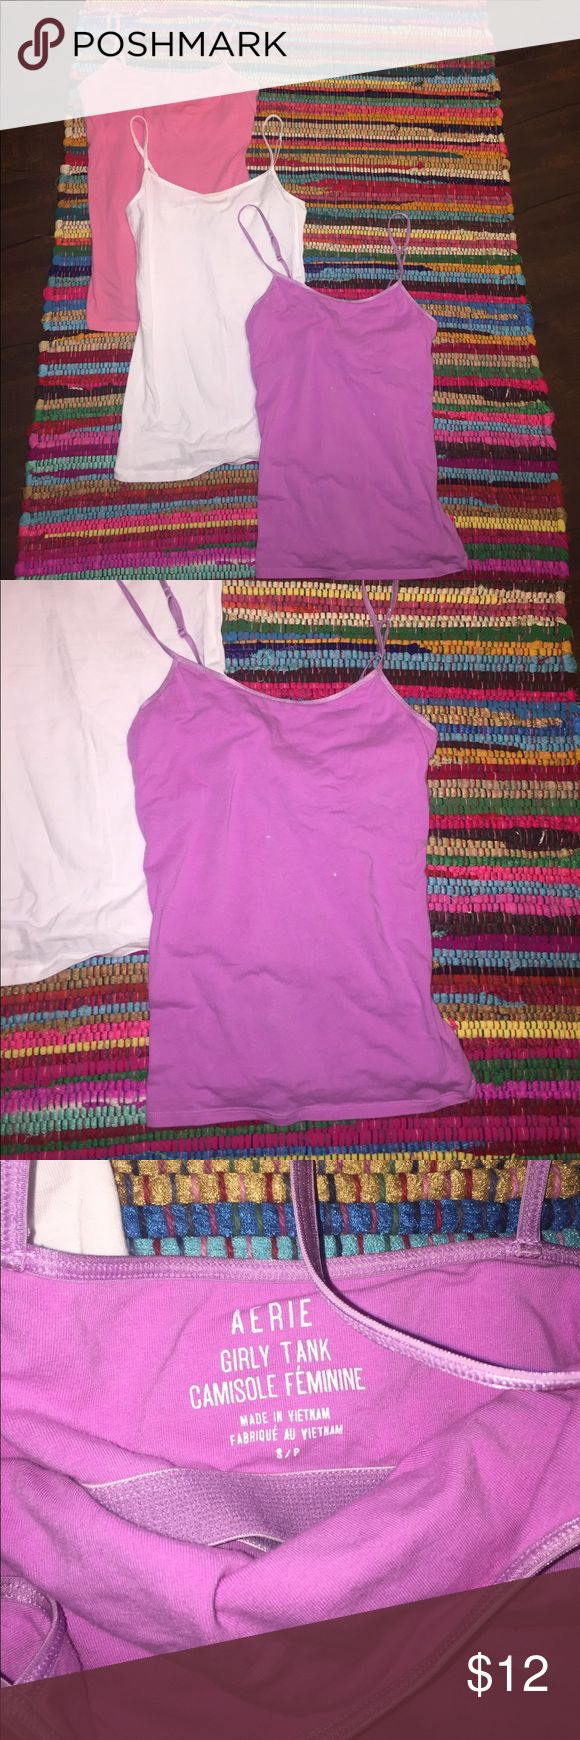 Cami PACKAGE DEAL 💕 Pink white and purple camis from Aerie and Aeropostale. White one has never been worn. Pink one in good condition besides small hole shown in picture, but still can be worn as an under shirt. Purple is in great condition besides two small bleach stains in middle of shirt so can be worn as undershirt still too! aerie Tops Camisoles